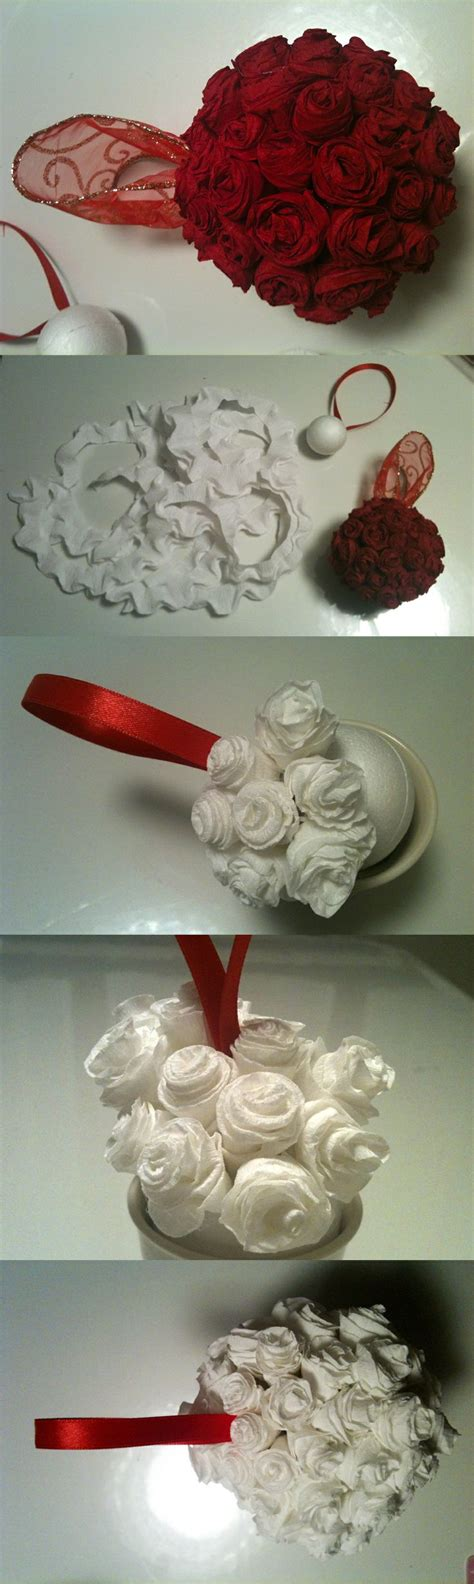 How To Make Crepe Paper Balls - my diy hanging flower made with styrofoam balls